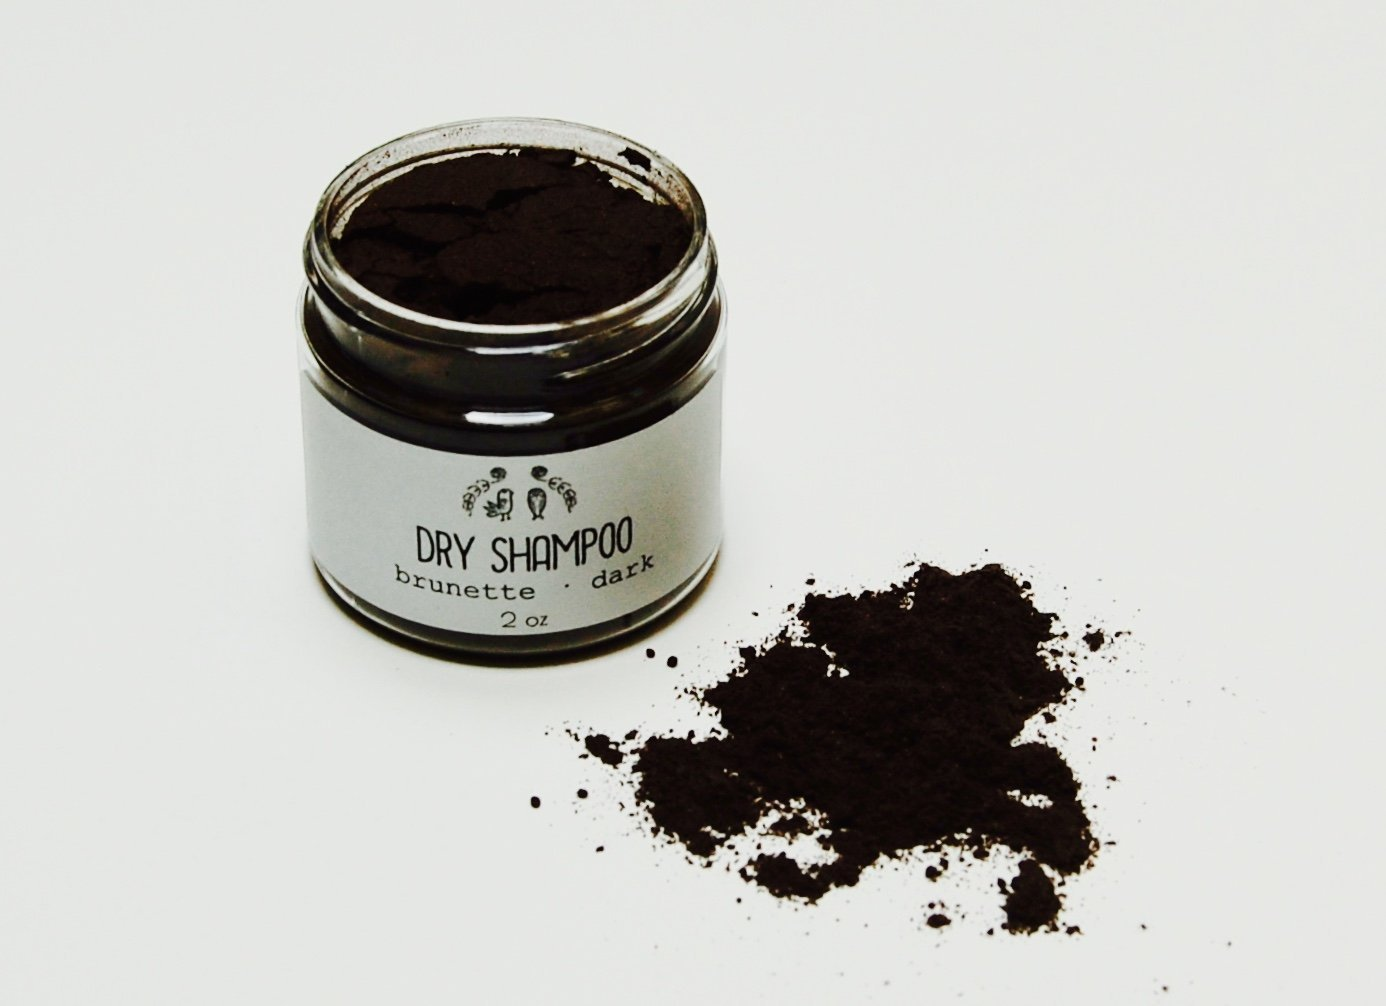 Natural Dry Shampoo//Dark Brown Brunette/Black//Hair Powder